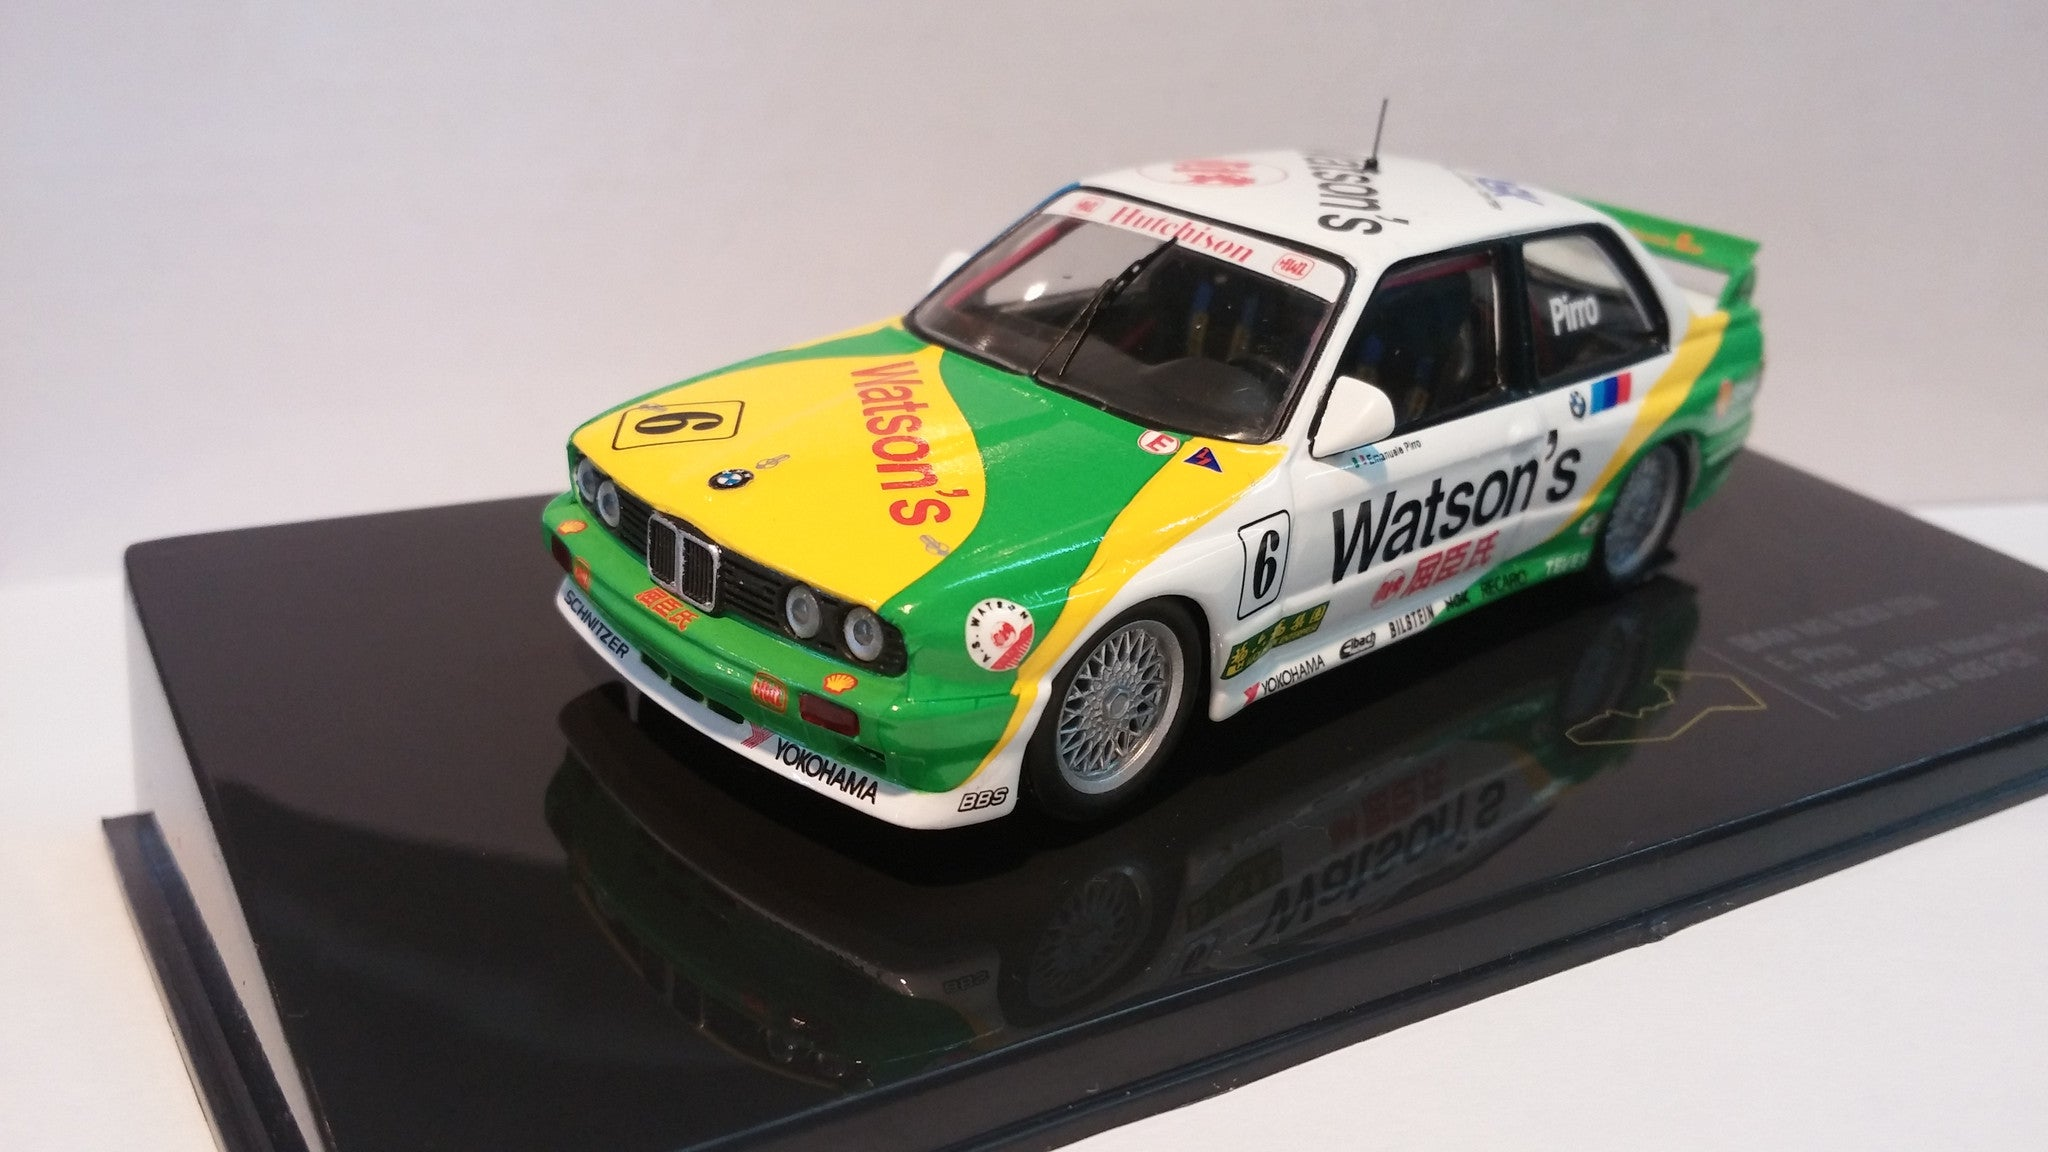 Premium X 1/43 BMW M3 (E30) DTM #6 1991 Guia Race Winner - Emanuele Pirro - MGPC002 Macau Grand Prix Collection 澳門賽車系列